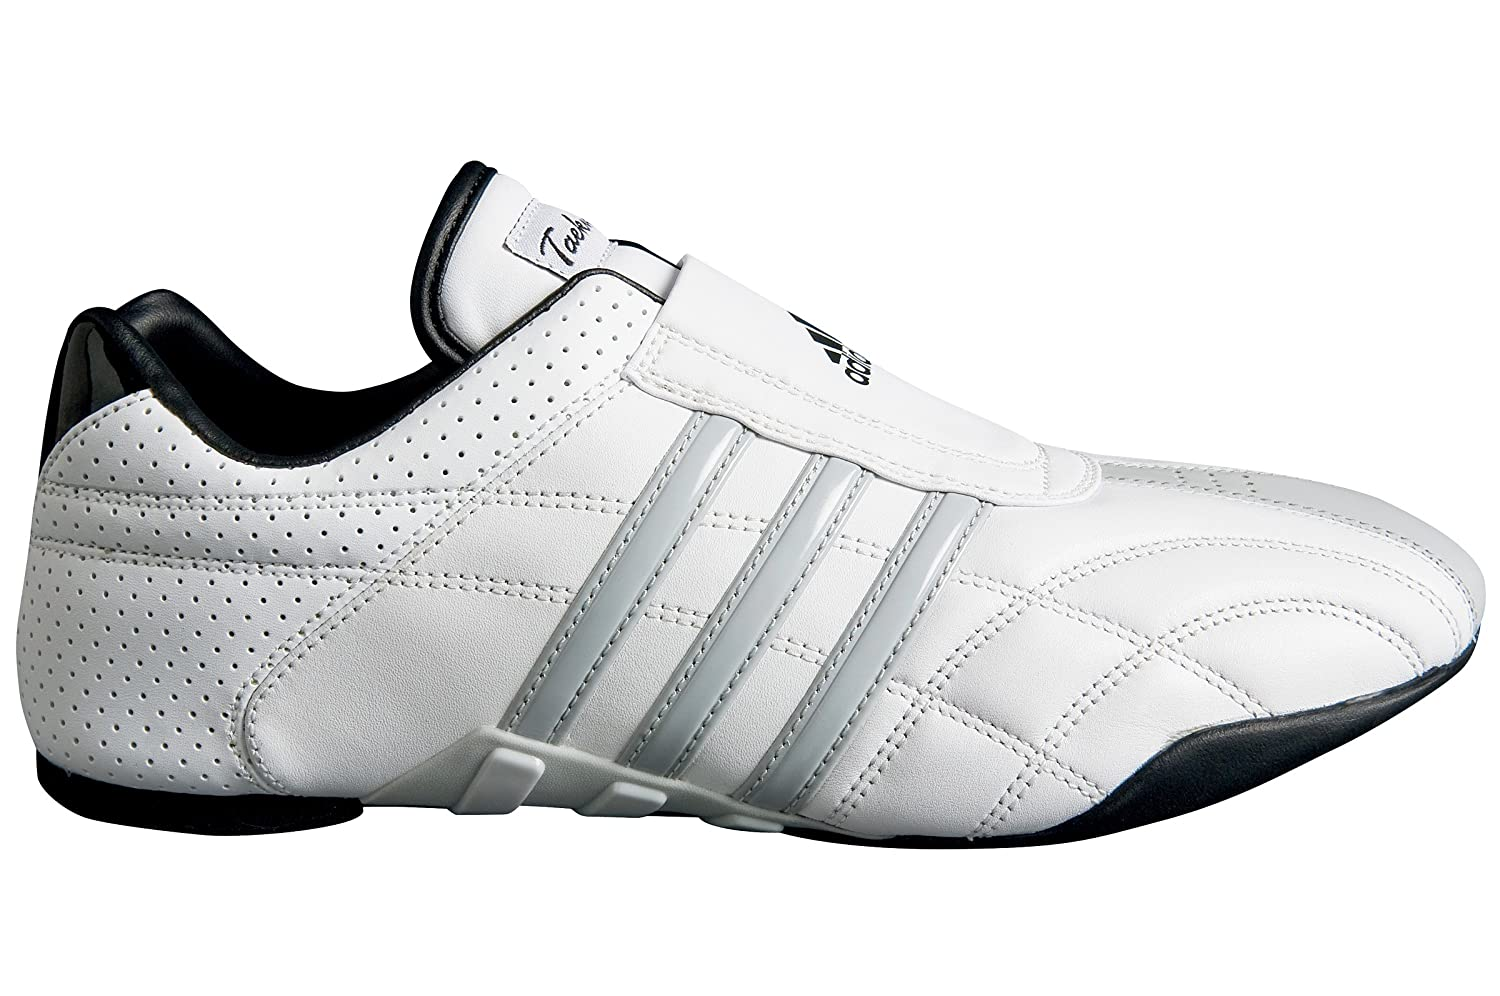 0b317f3a029 Amazon.com  adidas Taekwondo Adilux Shoes  Shoes